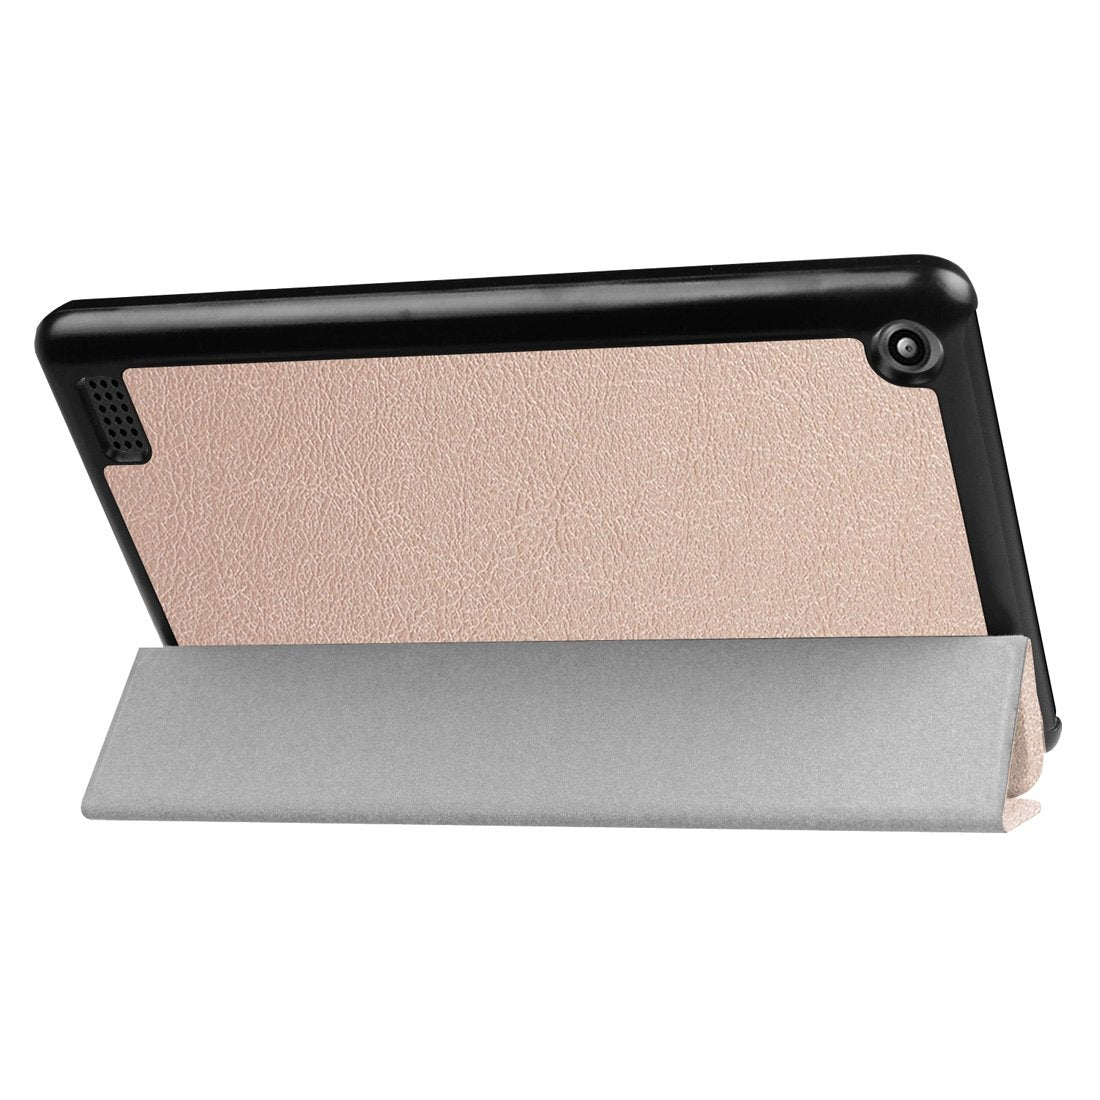 AMZER Flip Leather Case + Sleep/Wake-up For Amazon